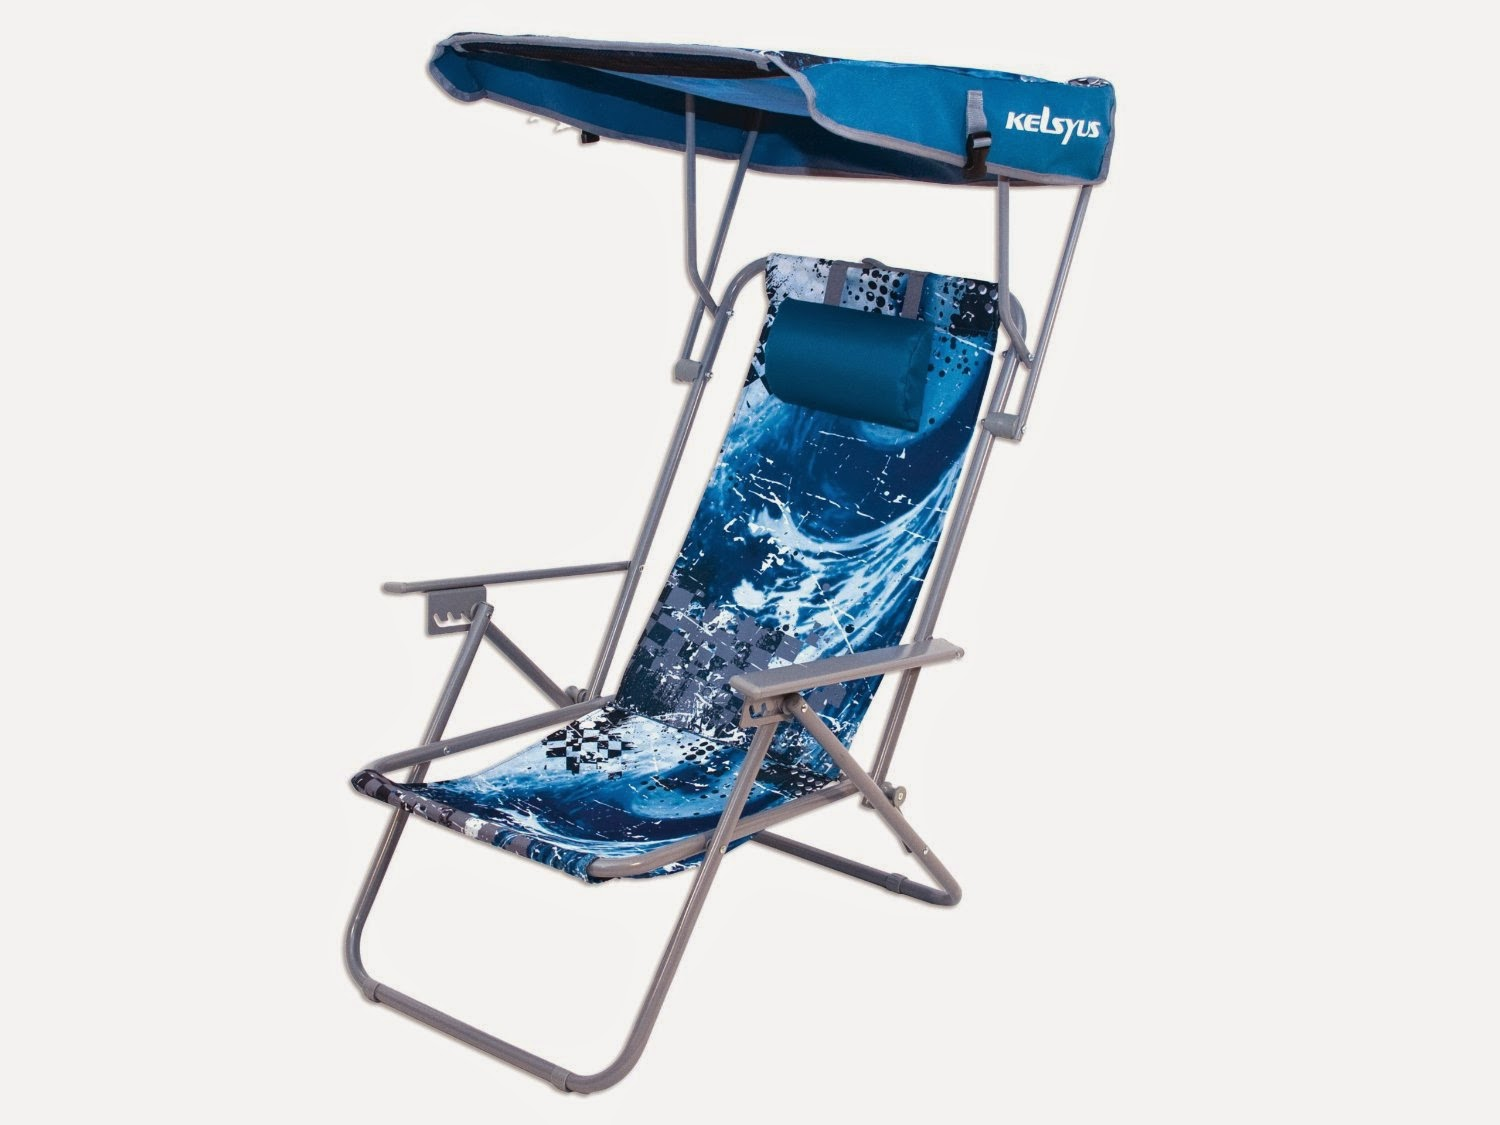 Best Inexpensive Beach Chairs Sharper Image Massage Cheap With Canopy